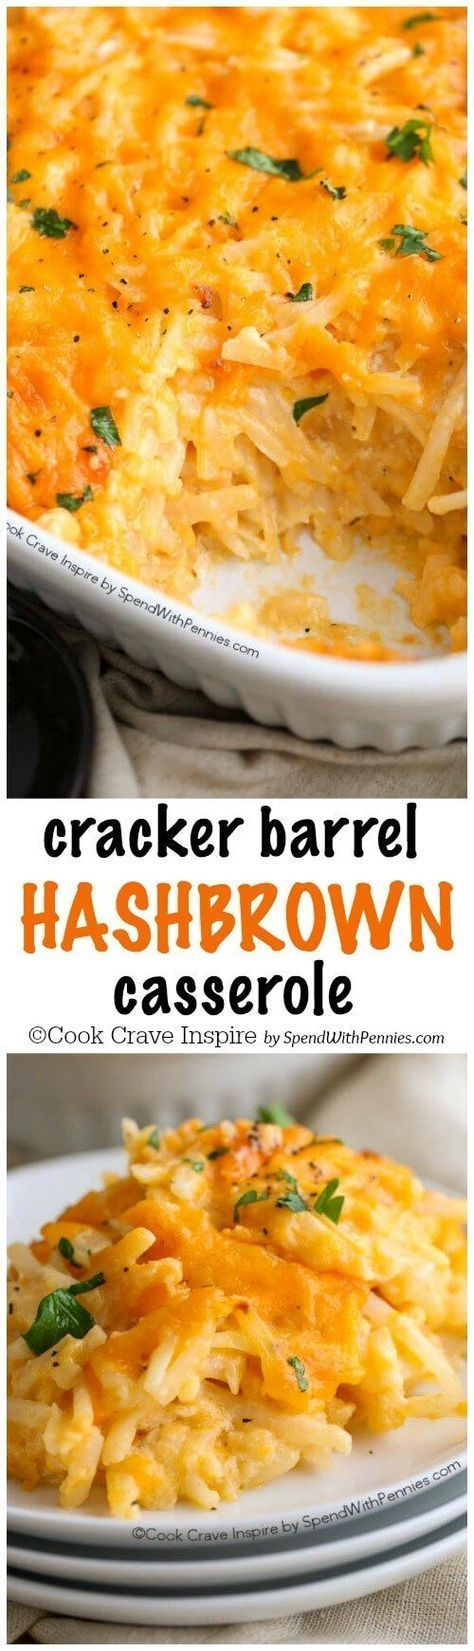 This Copy Cat Cracker Barrel Hashbrown Casserole is the closest to the real recipe you can find! This cheesy breakfast casserole is perfect… shares Facebook Twitter Google+ Pinterest LinkedIn StumbleUpon Tumblr VKontakte Print Email Reddit Buffer Weibo Pocket Odnoklassniki WhatsApp Meneame Blogger Line Flipboard SMS Subscribe